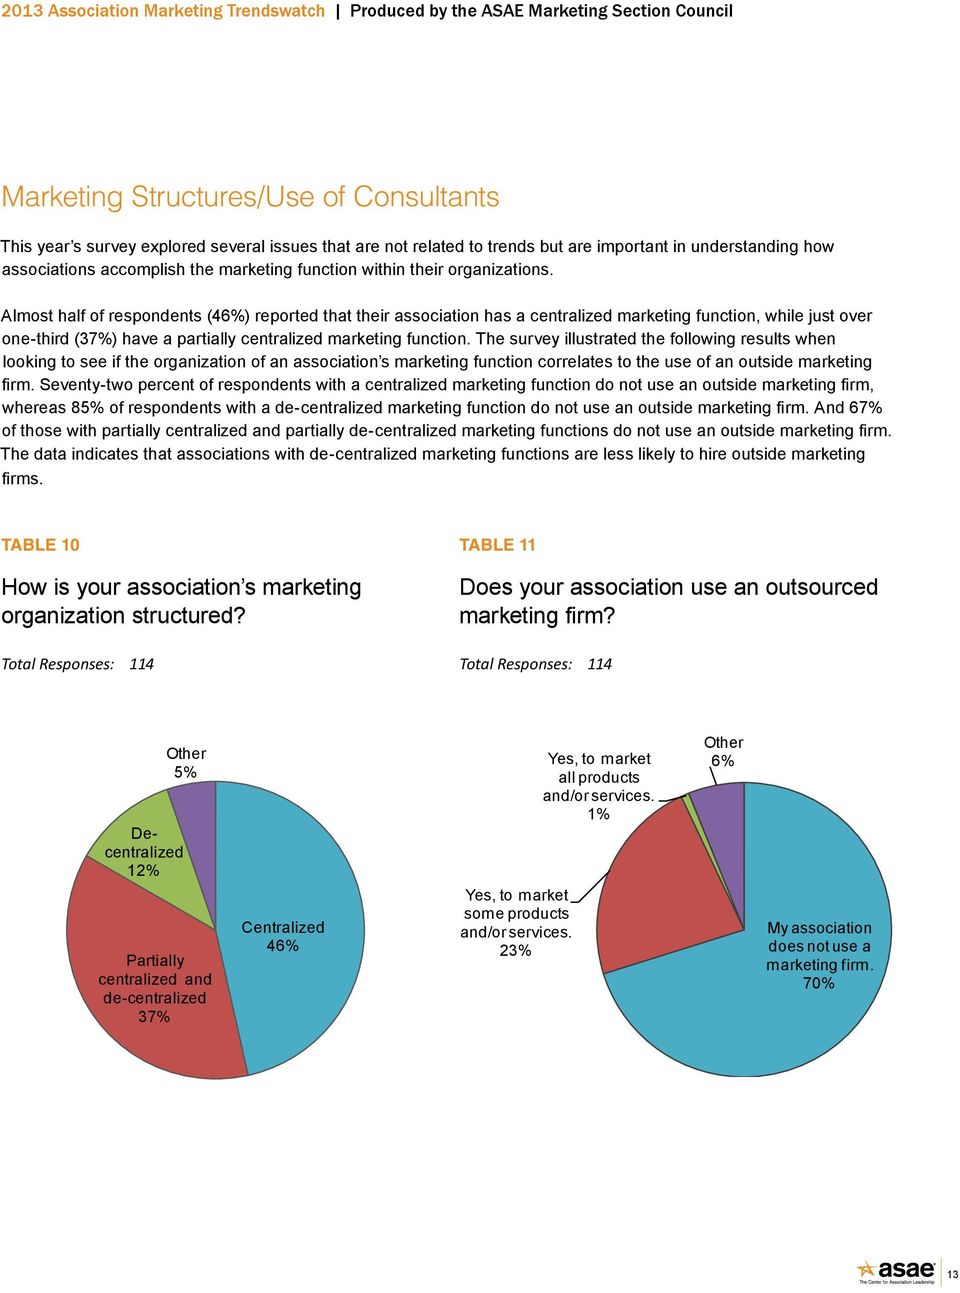 Almost half of respondents (46%) reported that their association has a centralized marketing function, while just over one-third (37%) have a partially centralized marketing function.